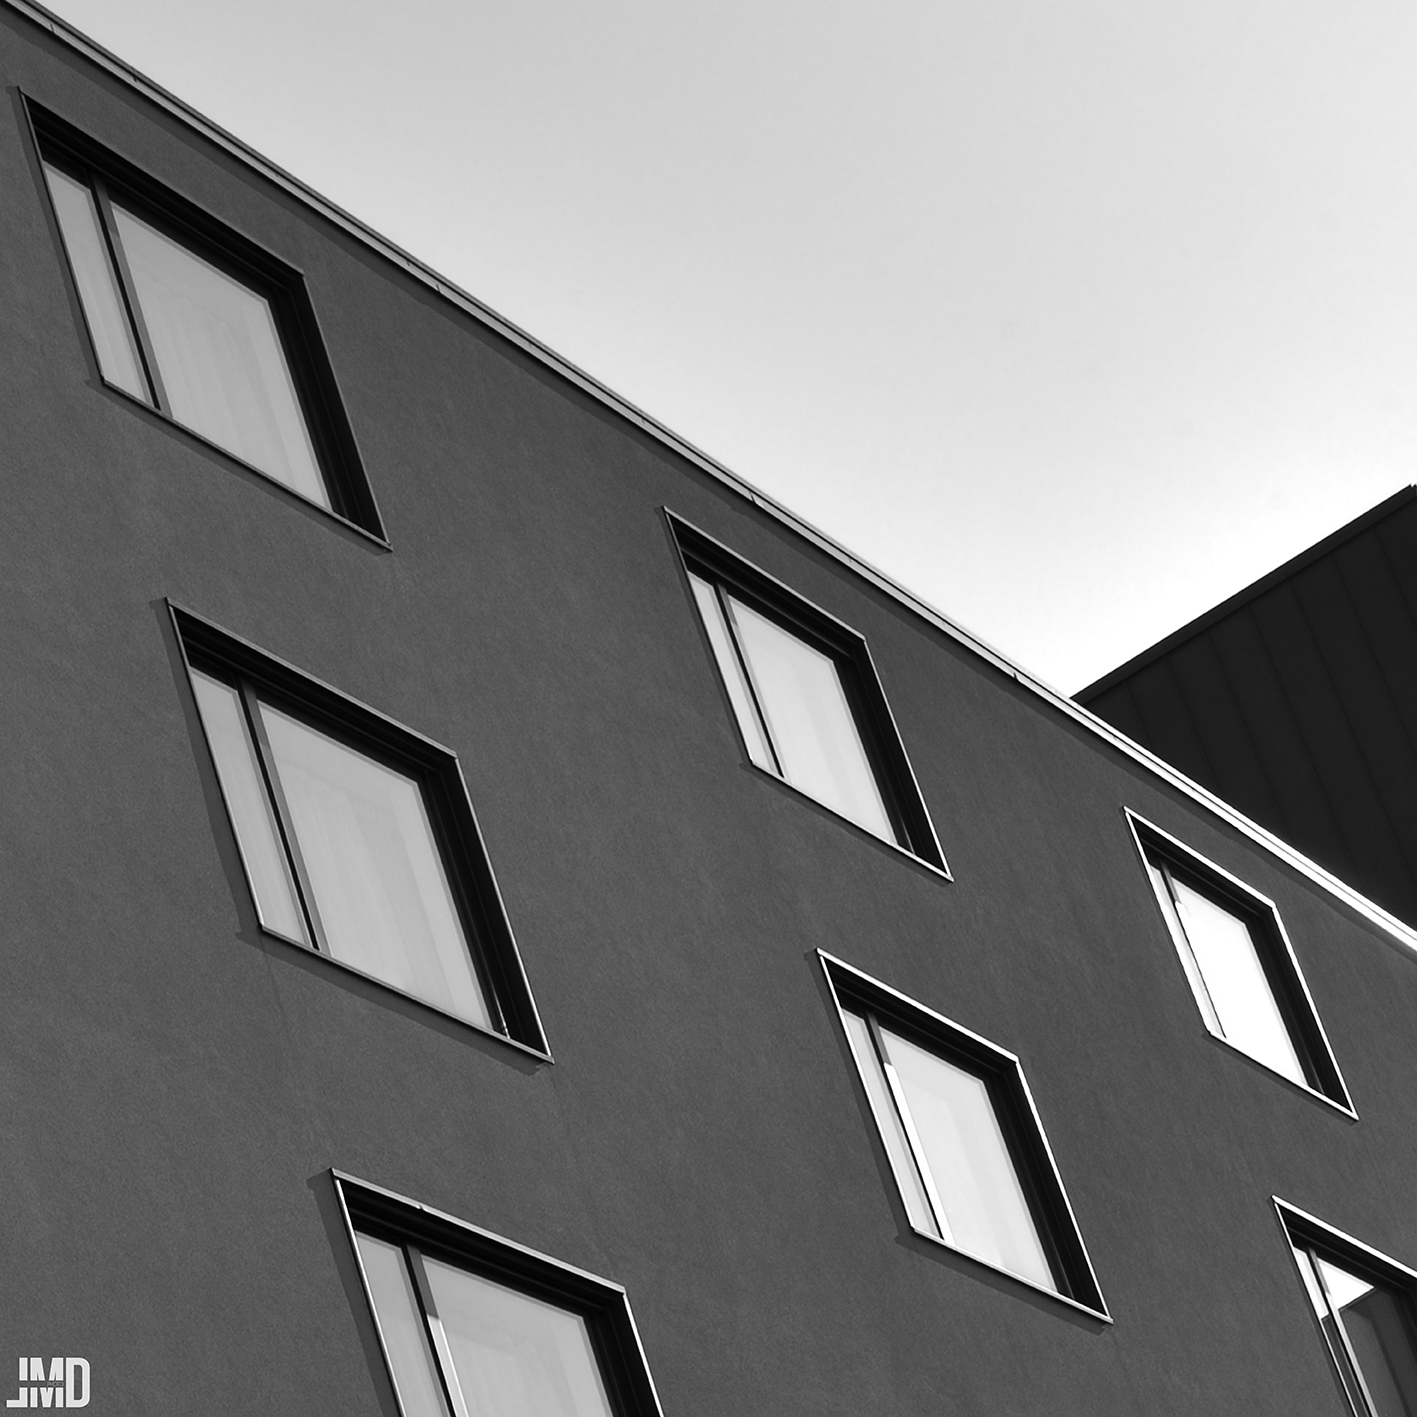 Architecture_LMD_4120_BD_by_Lucas_MAGRO-DULAC_2015